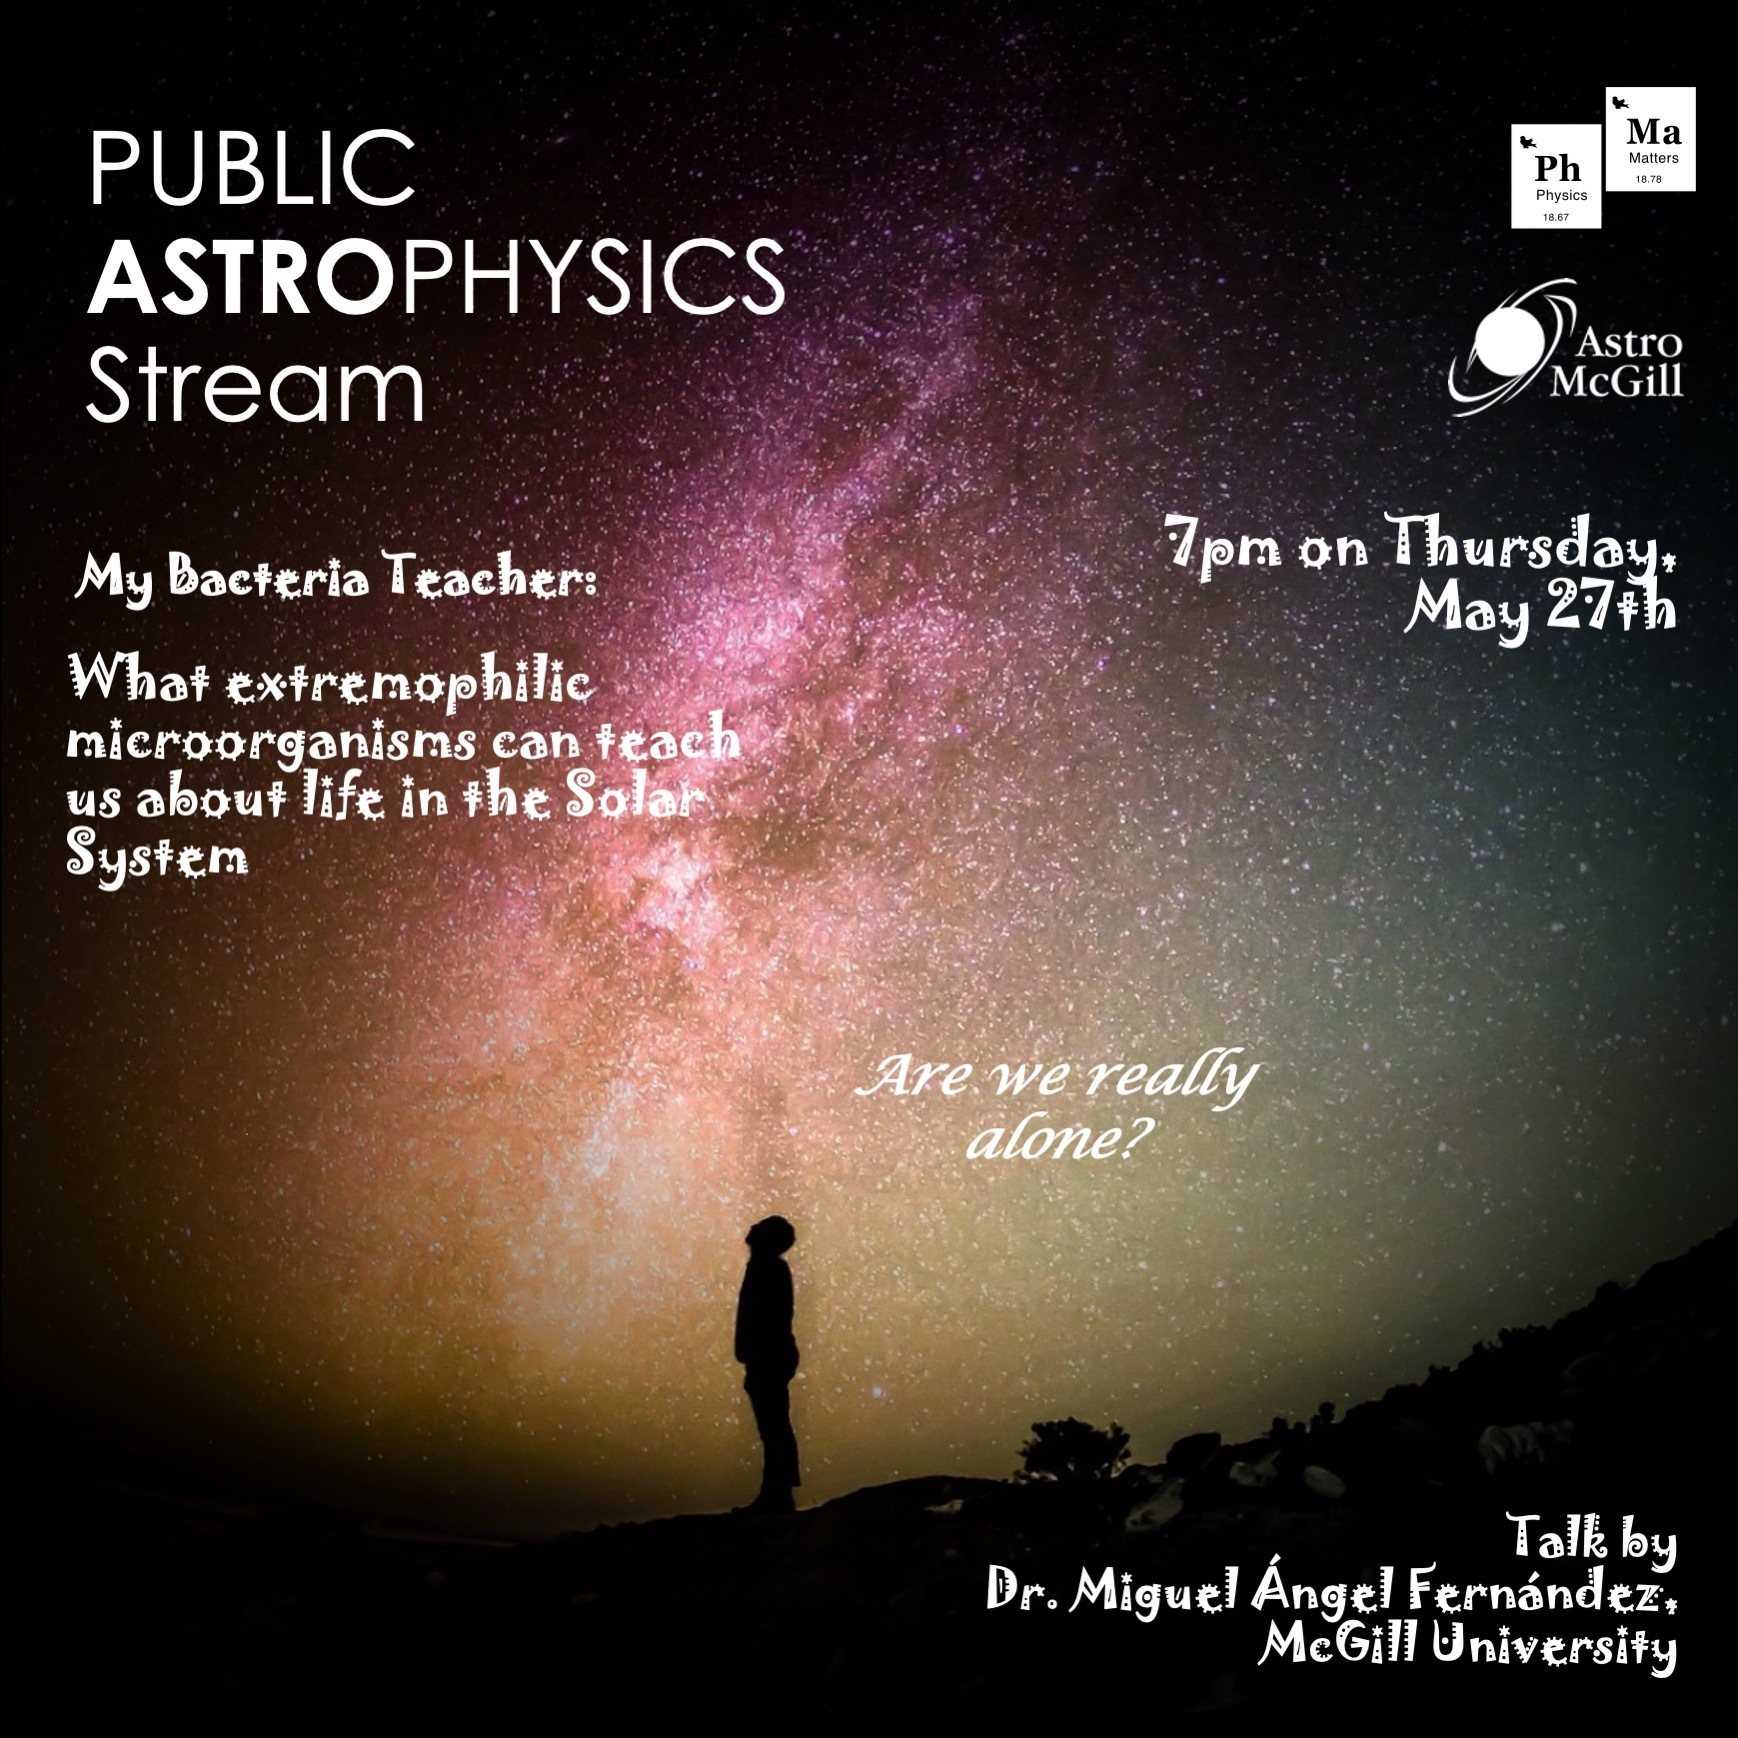 My Bacteria Teacher: What extremophilic microorganisms can teach us about life in the Solar System